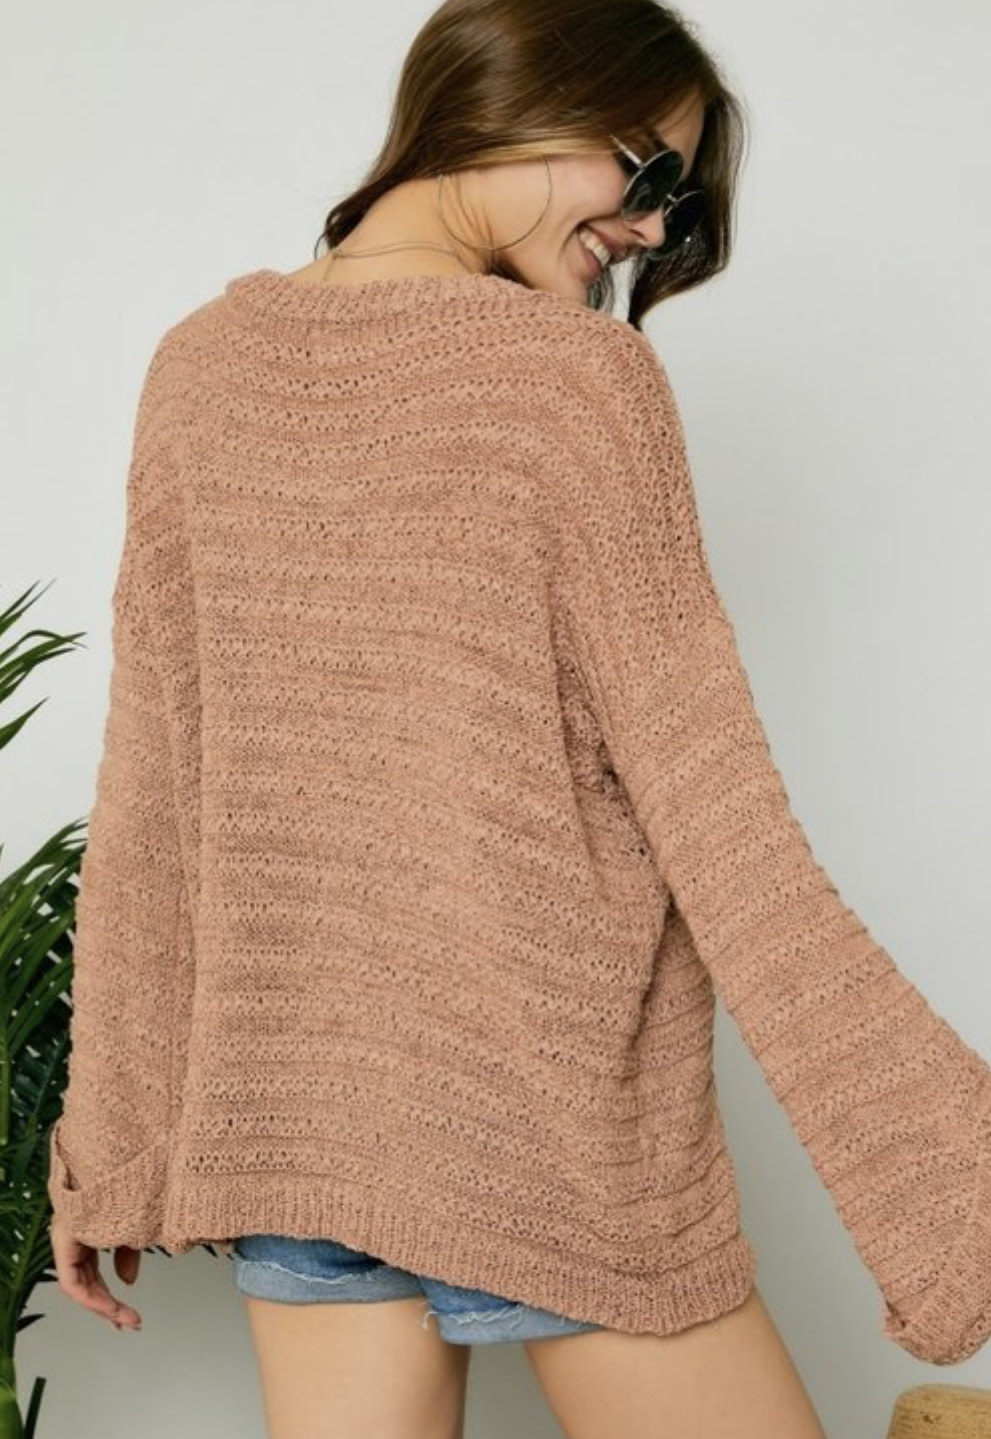 Christie's Everyday Cozy Sweater